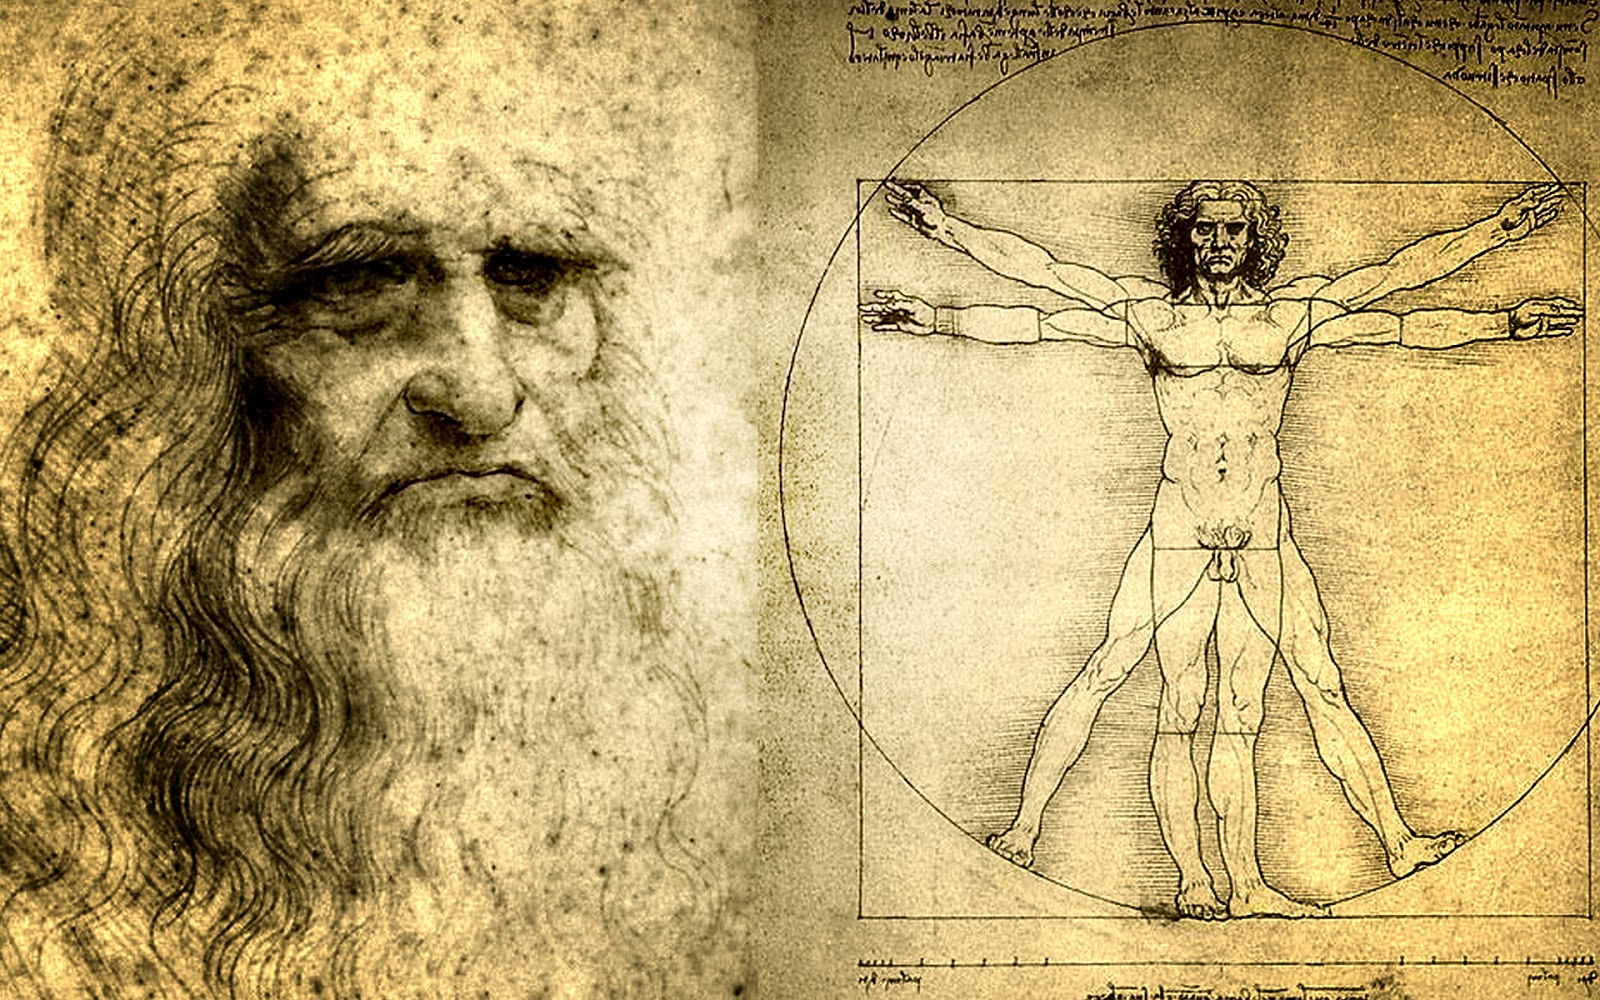 the genius of leonardo da vinci essay Leonardo da vinci essay leonardo da vinci was inarguably a great mind of the renaissance leonardo has often been described as a universal genius of the.